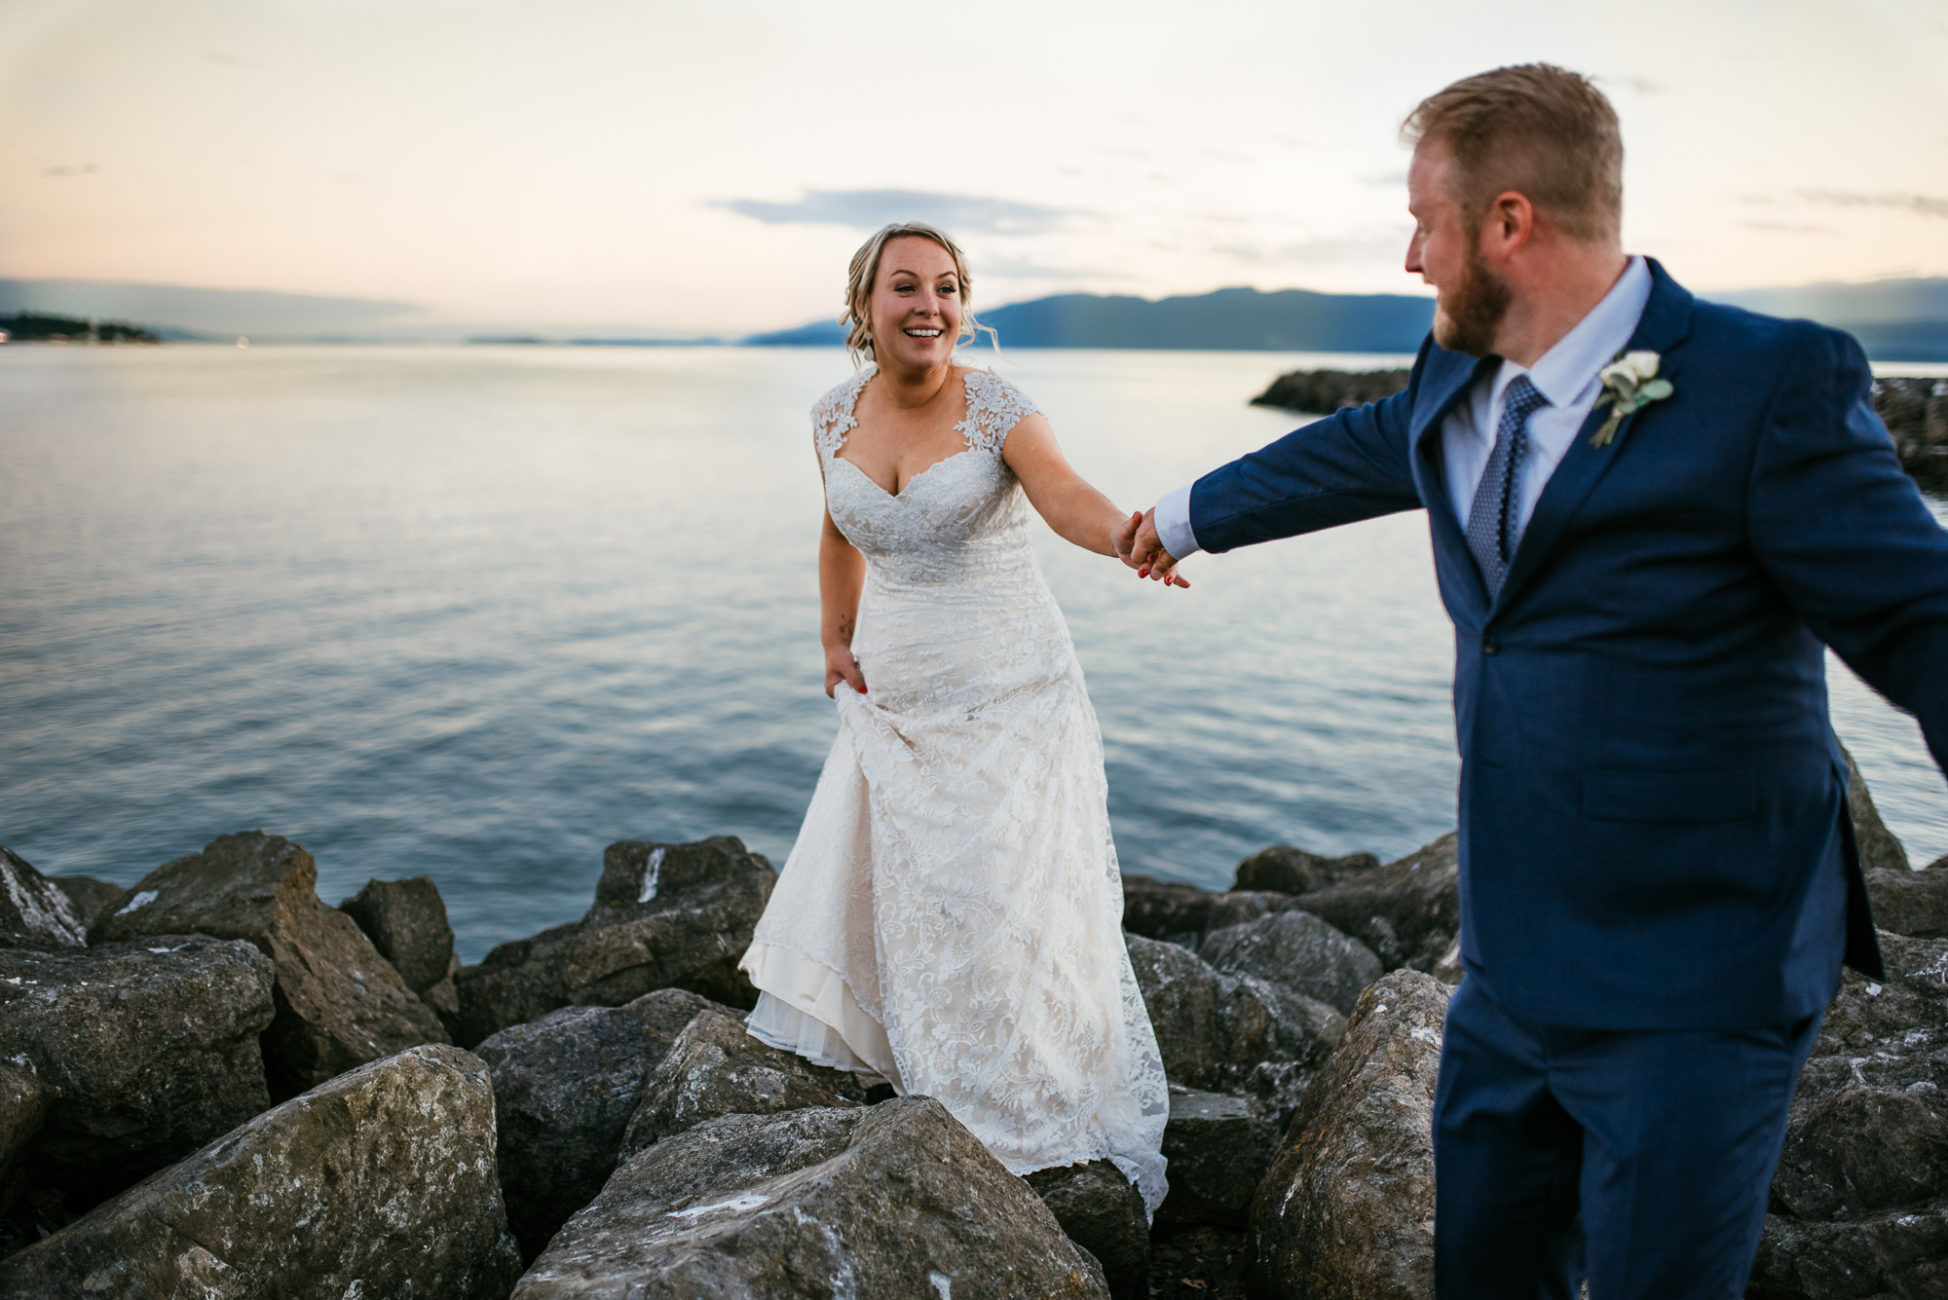 Bride and groom share intimate moment near the water by Jessica Uhler Photography